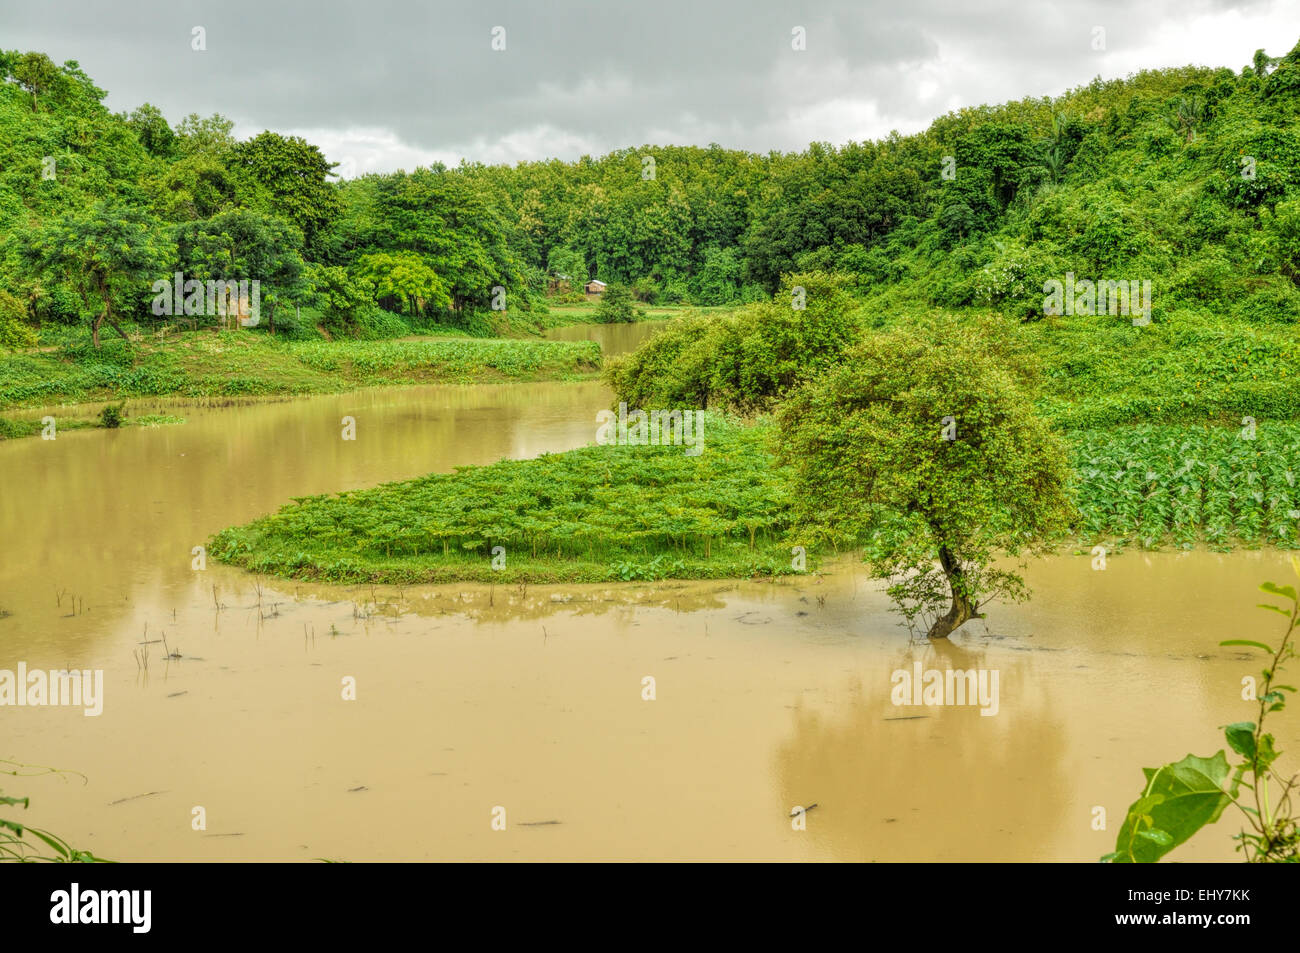 River flooding green fields in Bangladesh - Stock Image